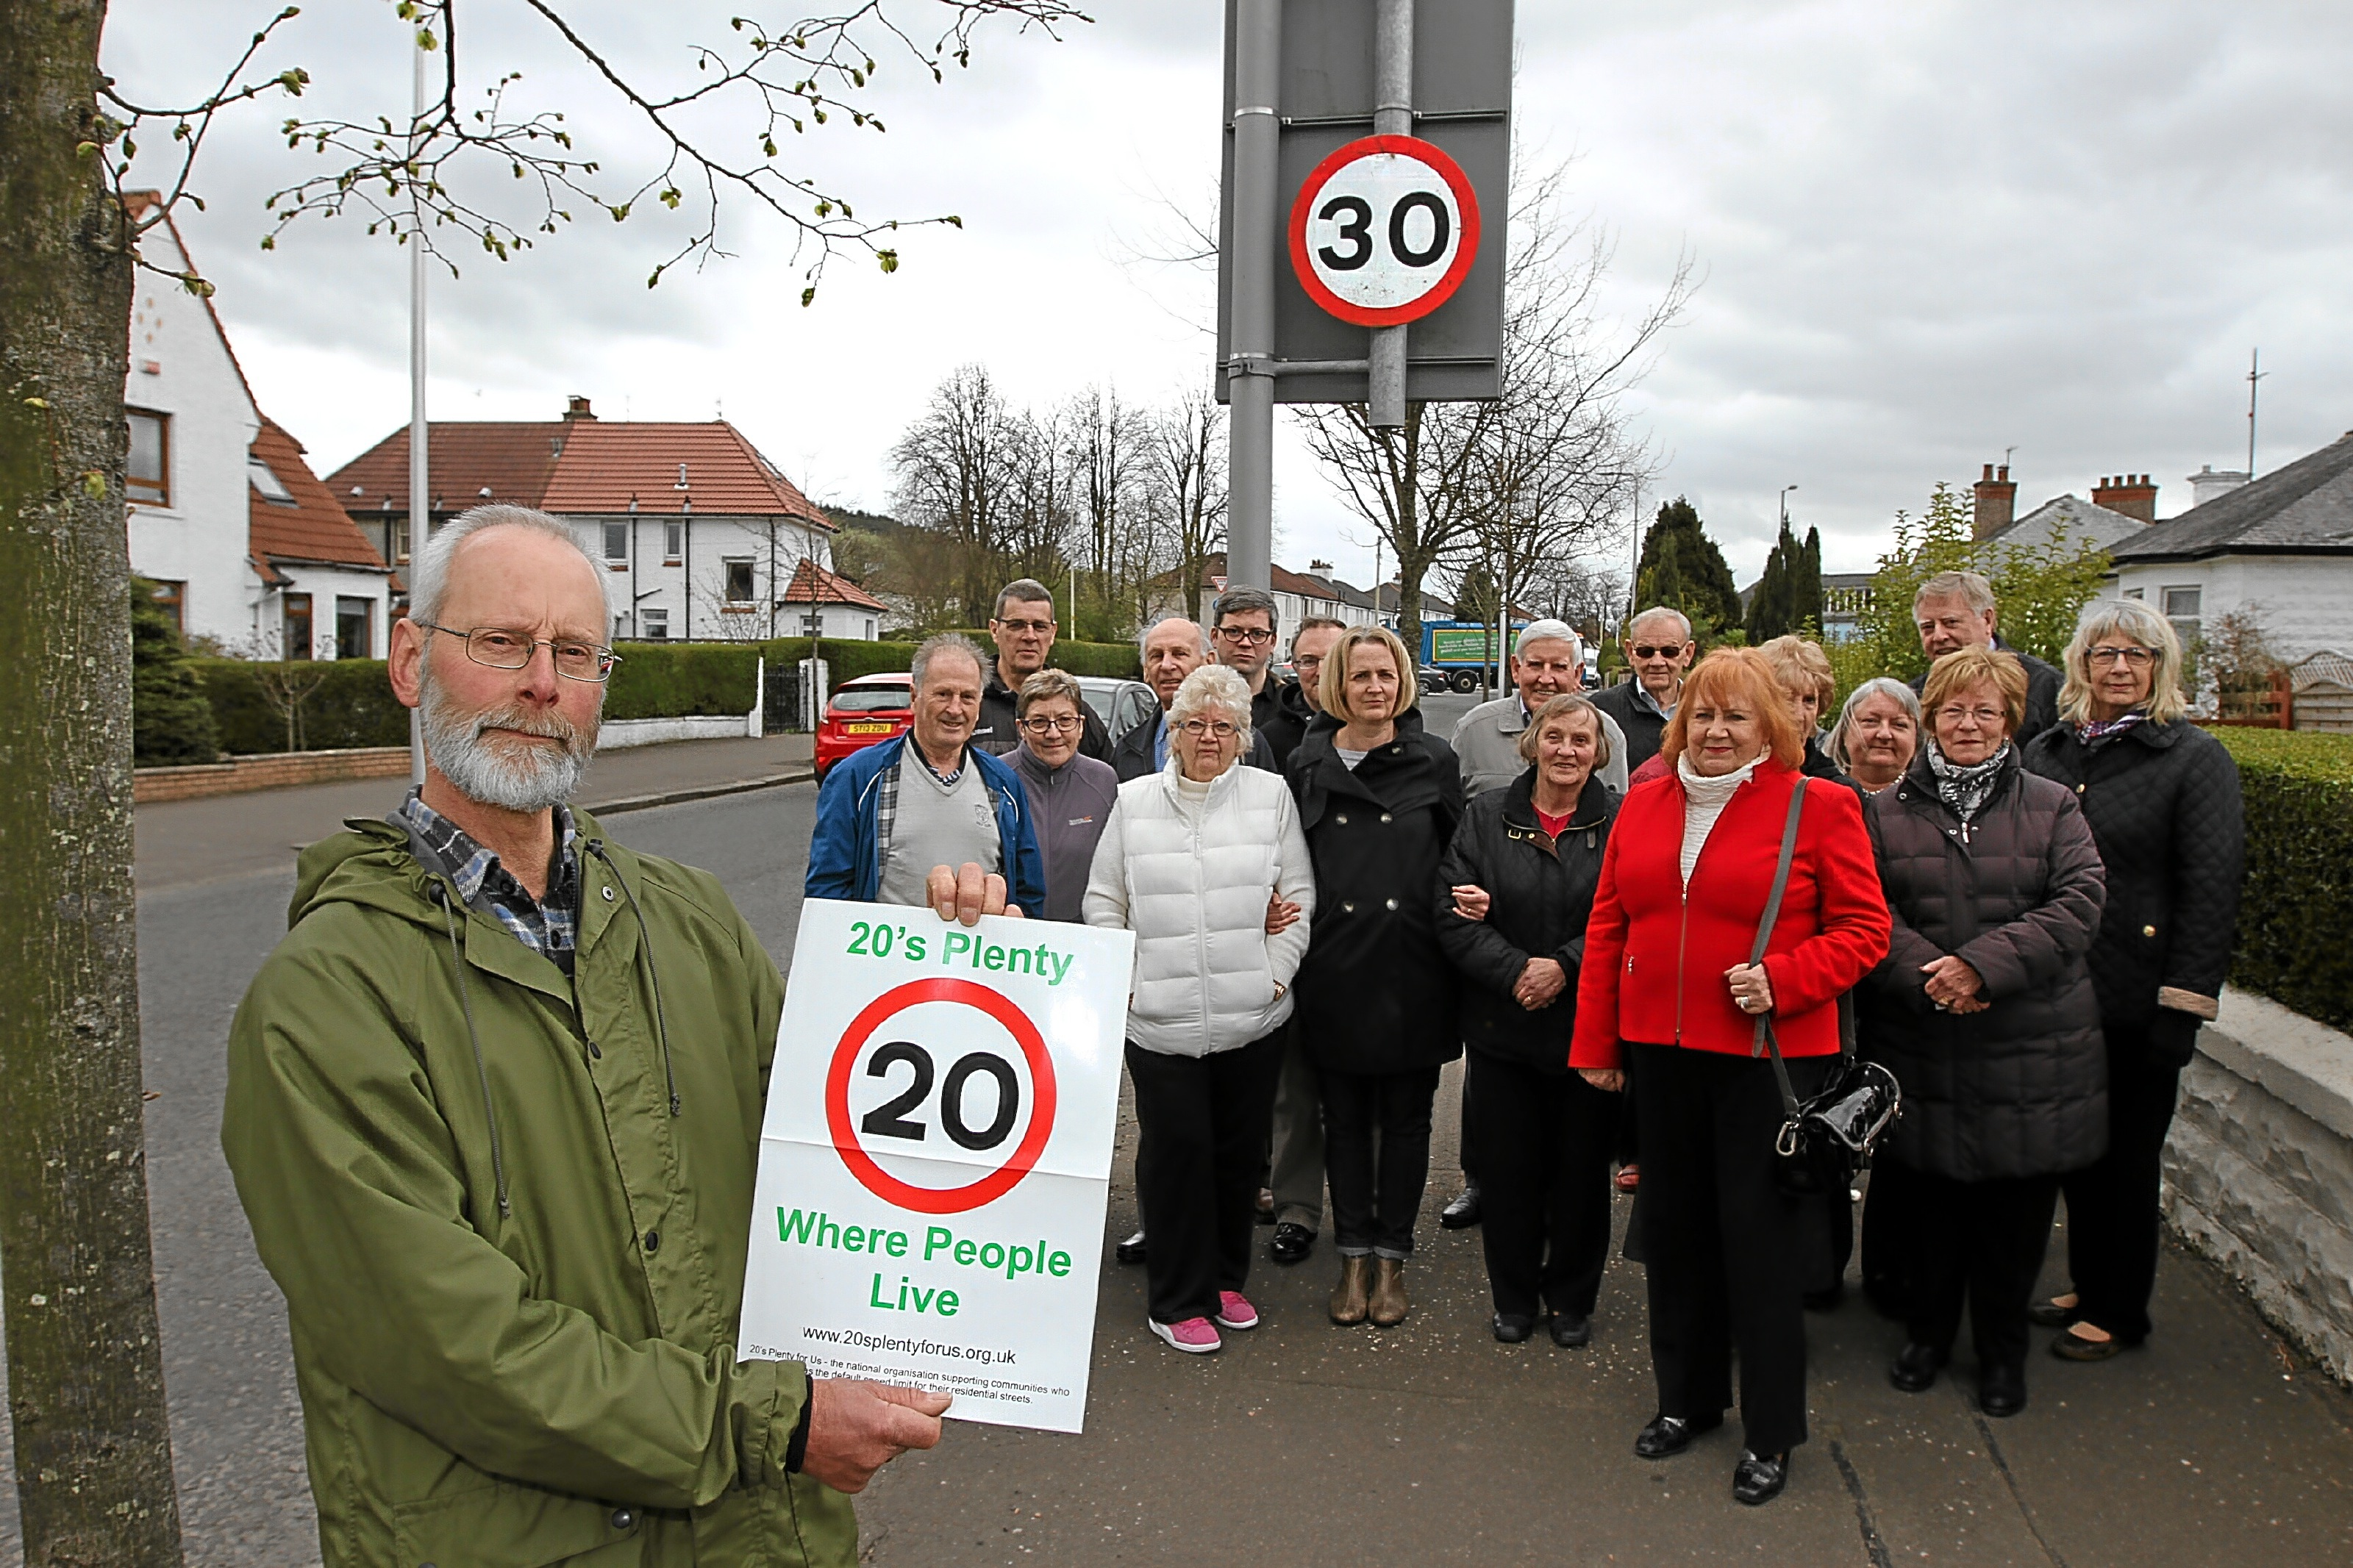 Derek Paton — pictured along with other residents — wants a permanent 20mph speed limit on Johnston Avenue in Brantwood.